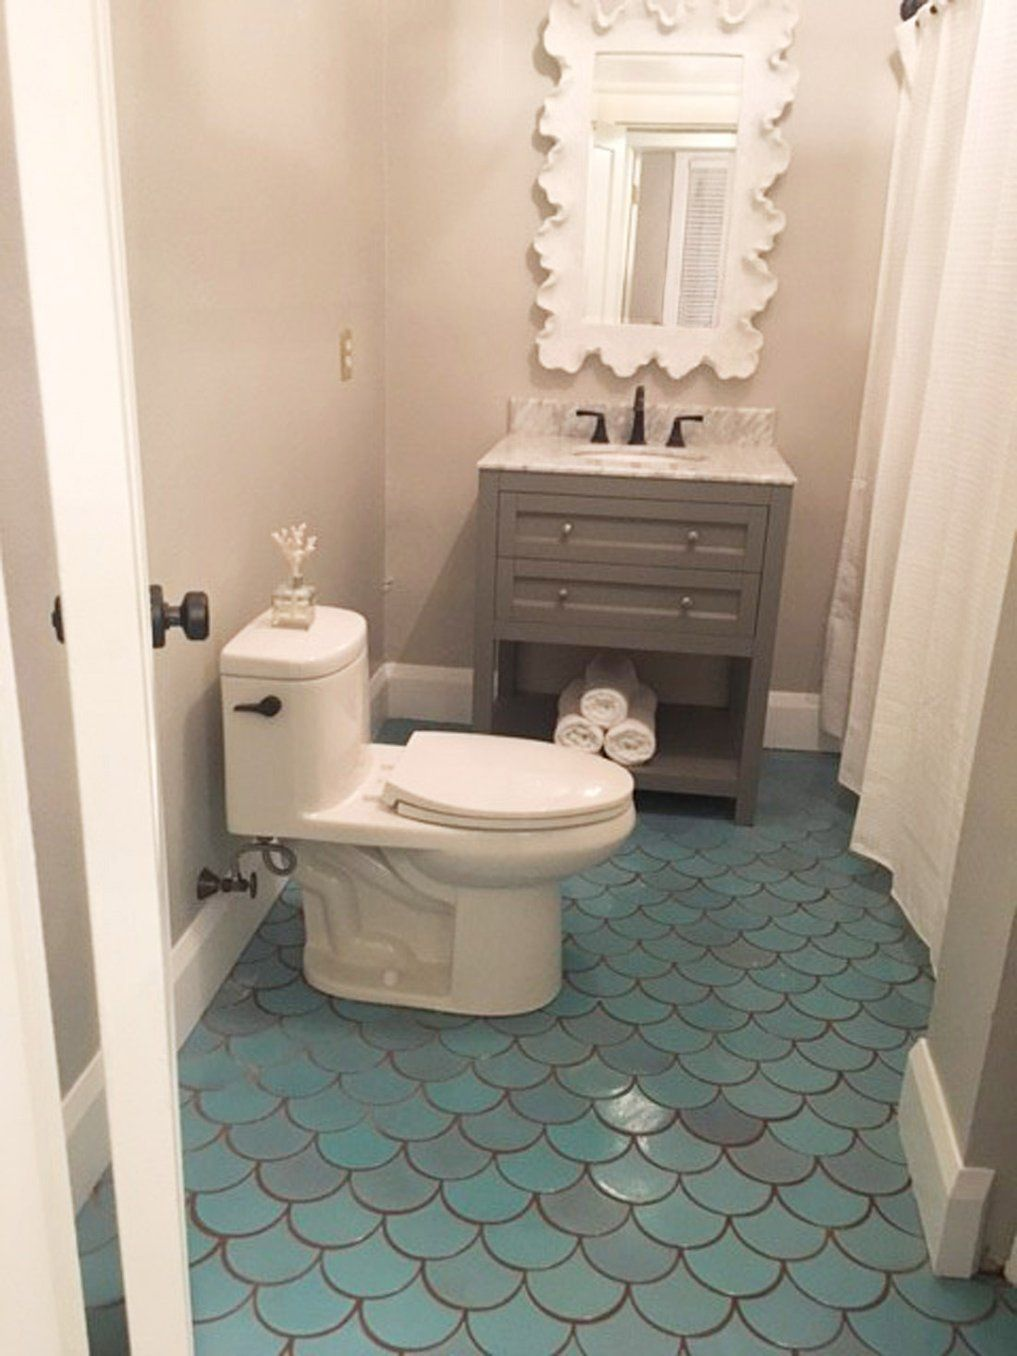 7 diy practical and decorative bathroom ideas.htm large moroccan fish scales 12r blue bell 12r blue bell  with  moroccan fish scales 12r blue bell